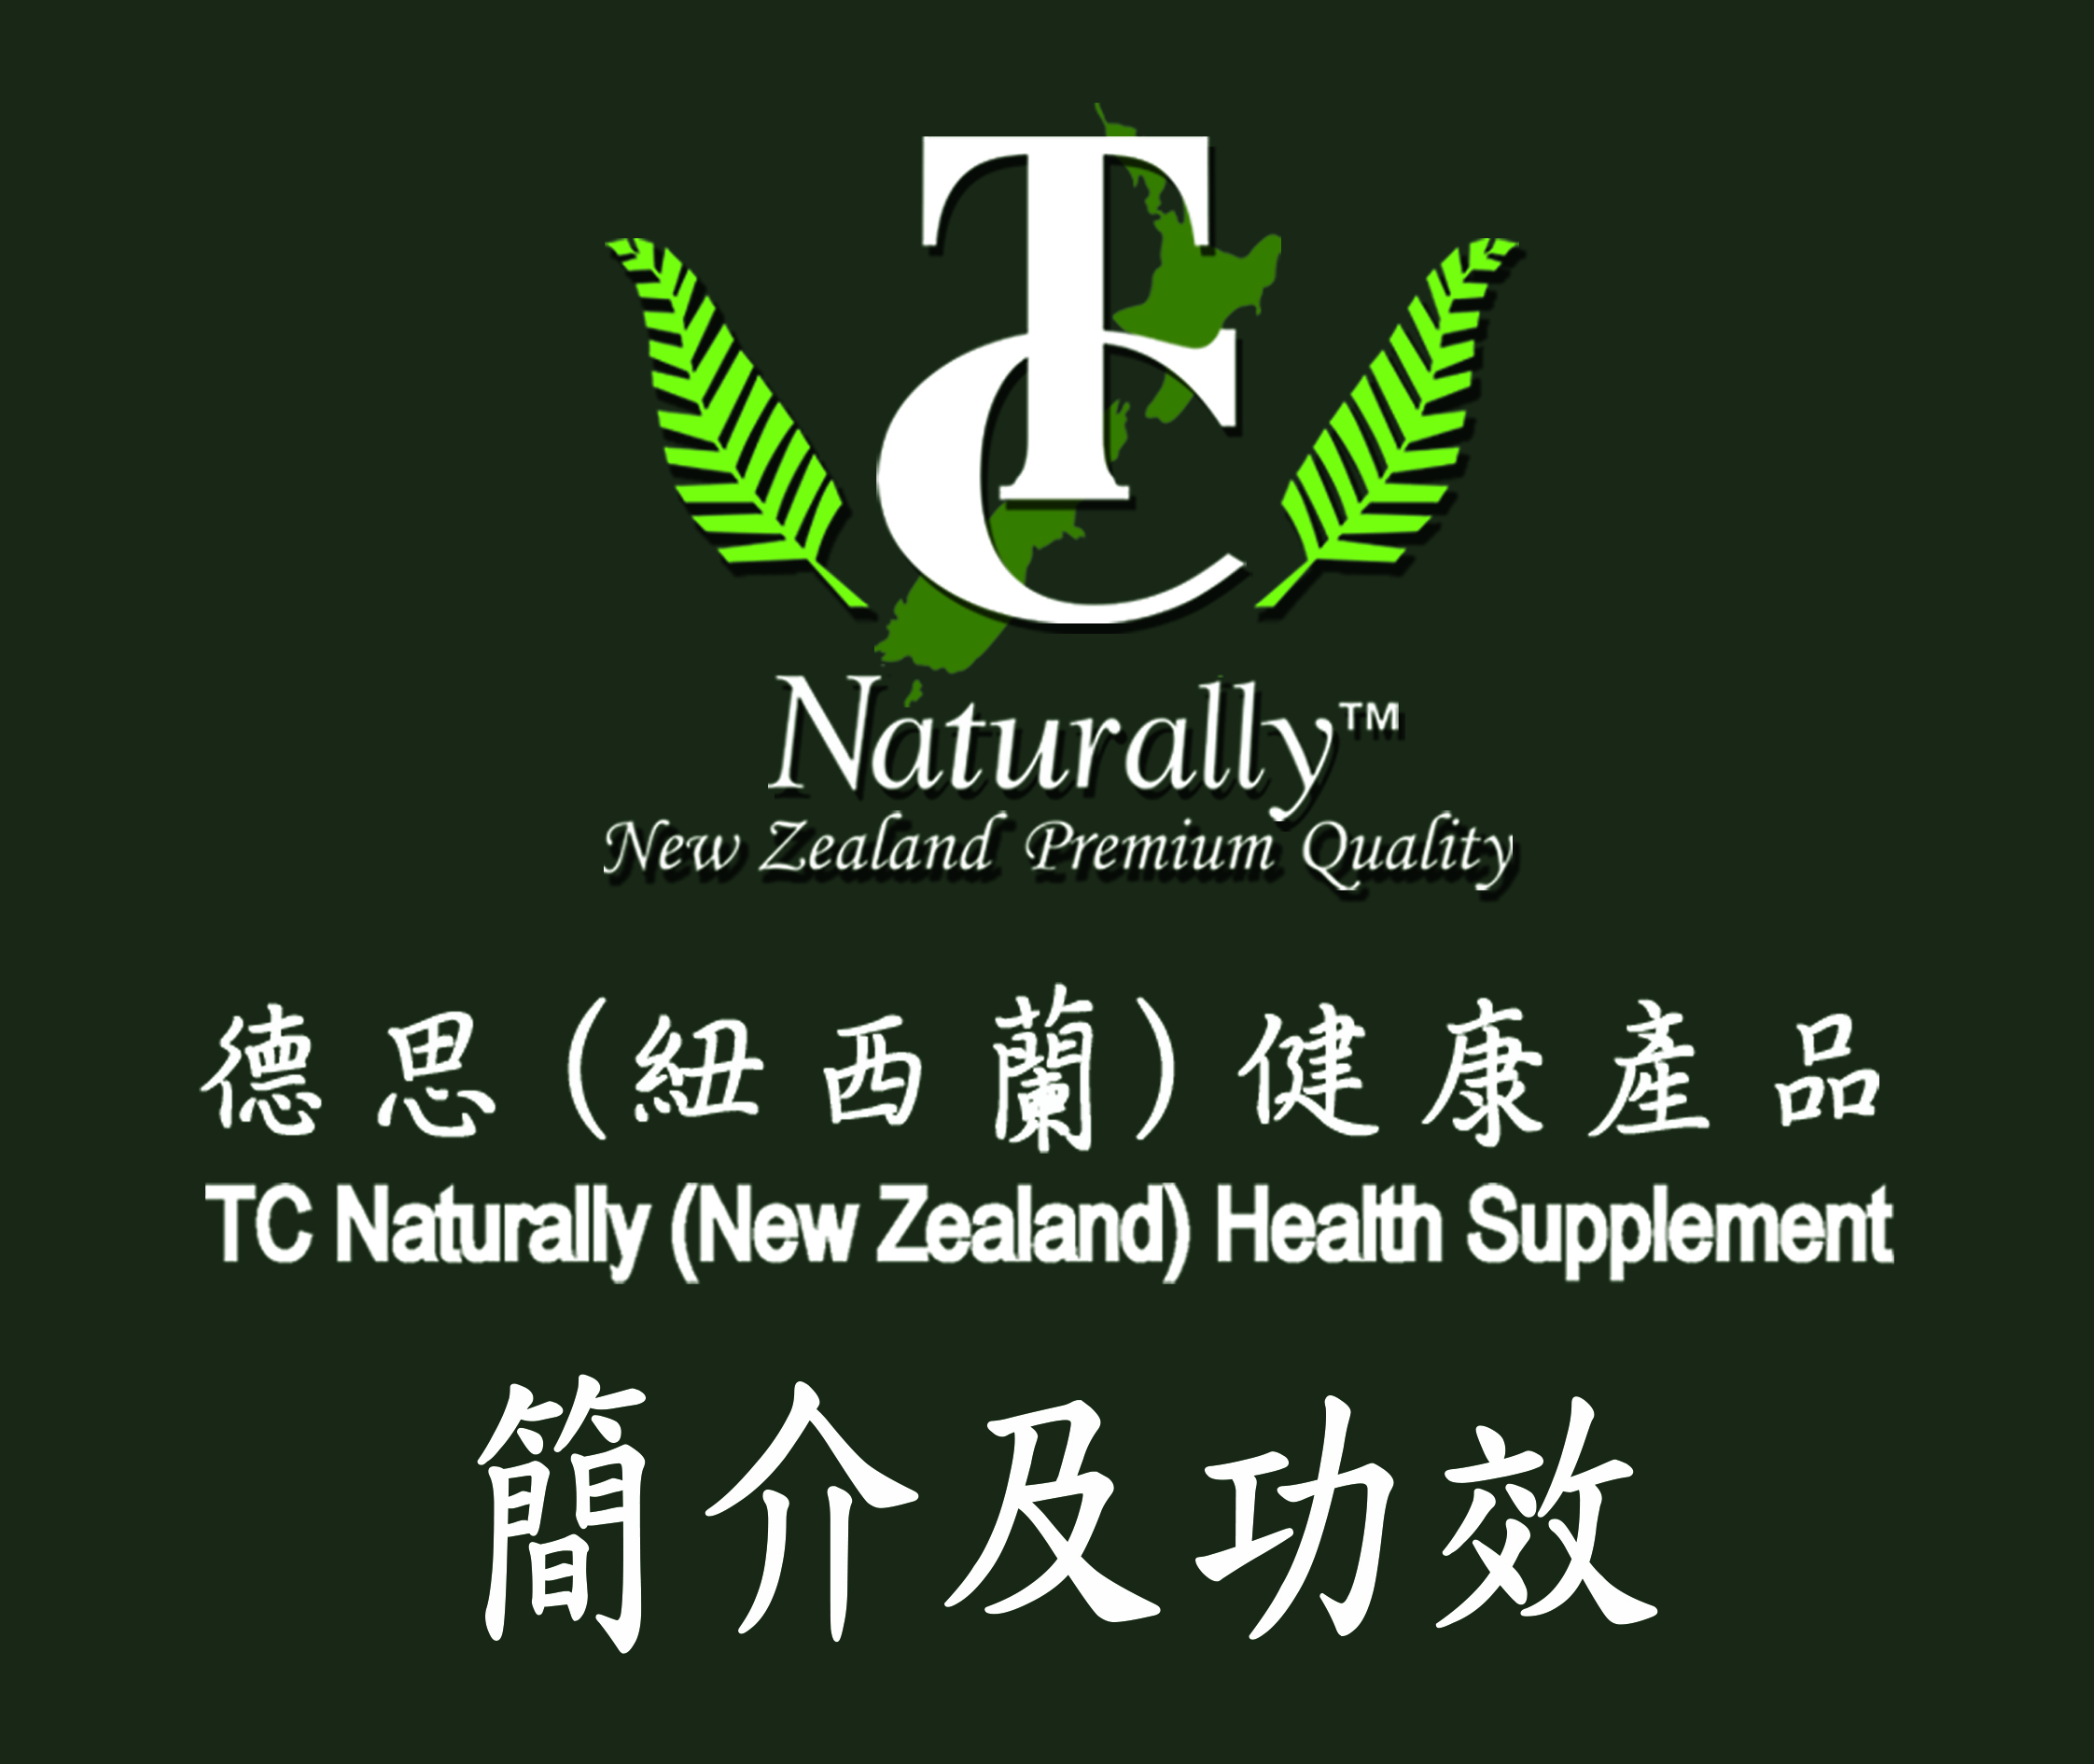 About TC NATURALLY (New Zealand) Health Supplement